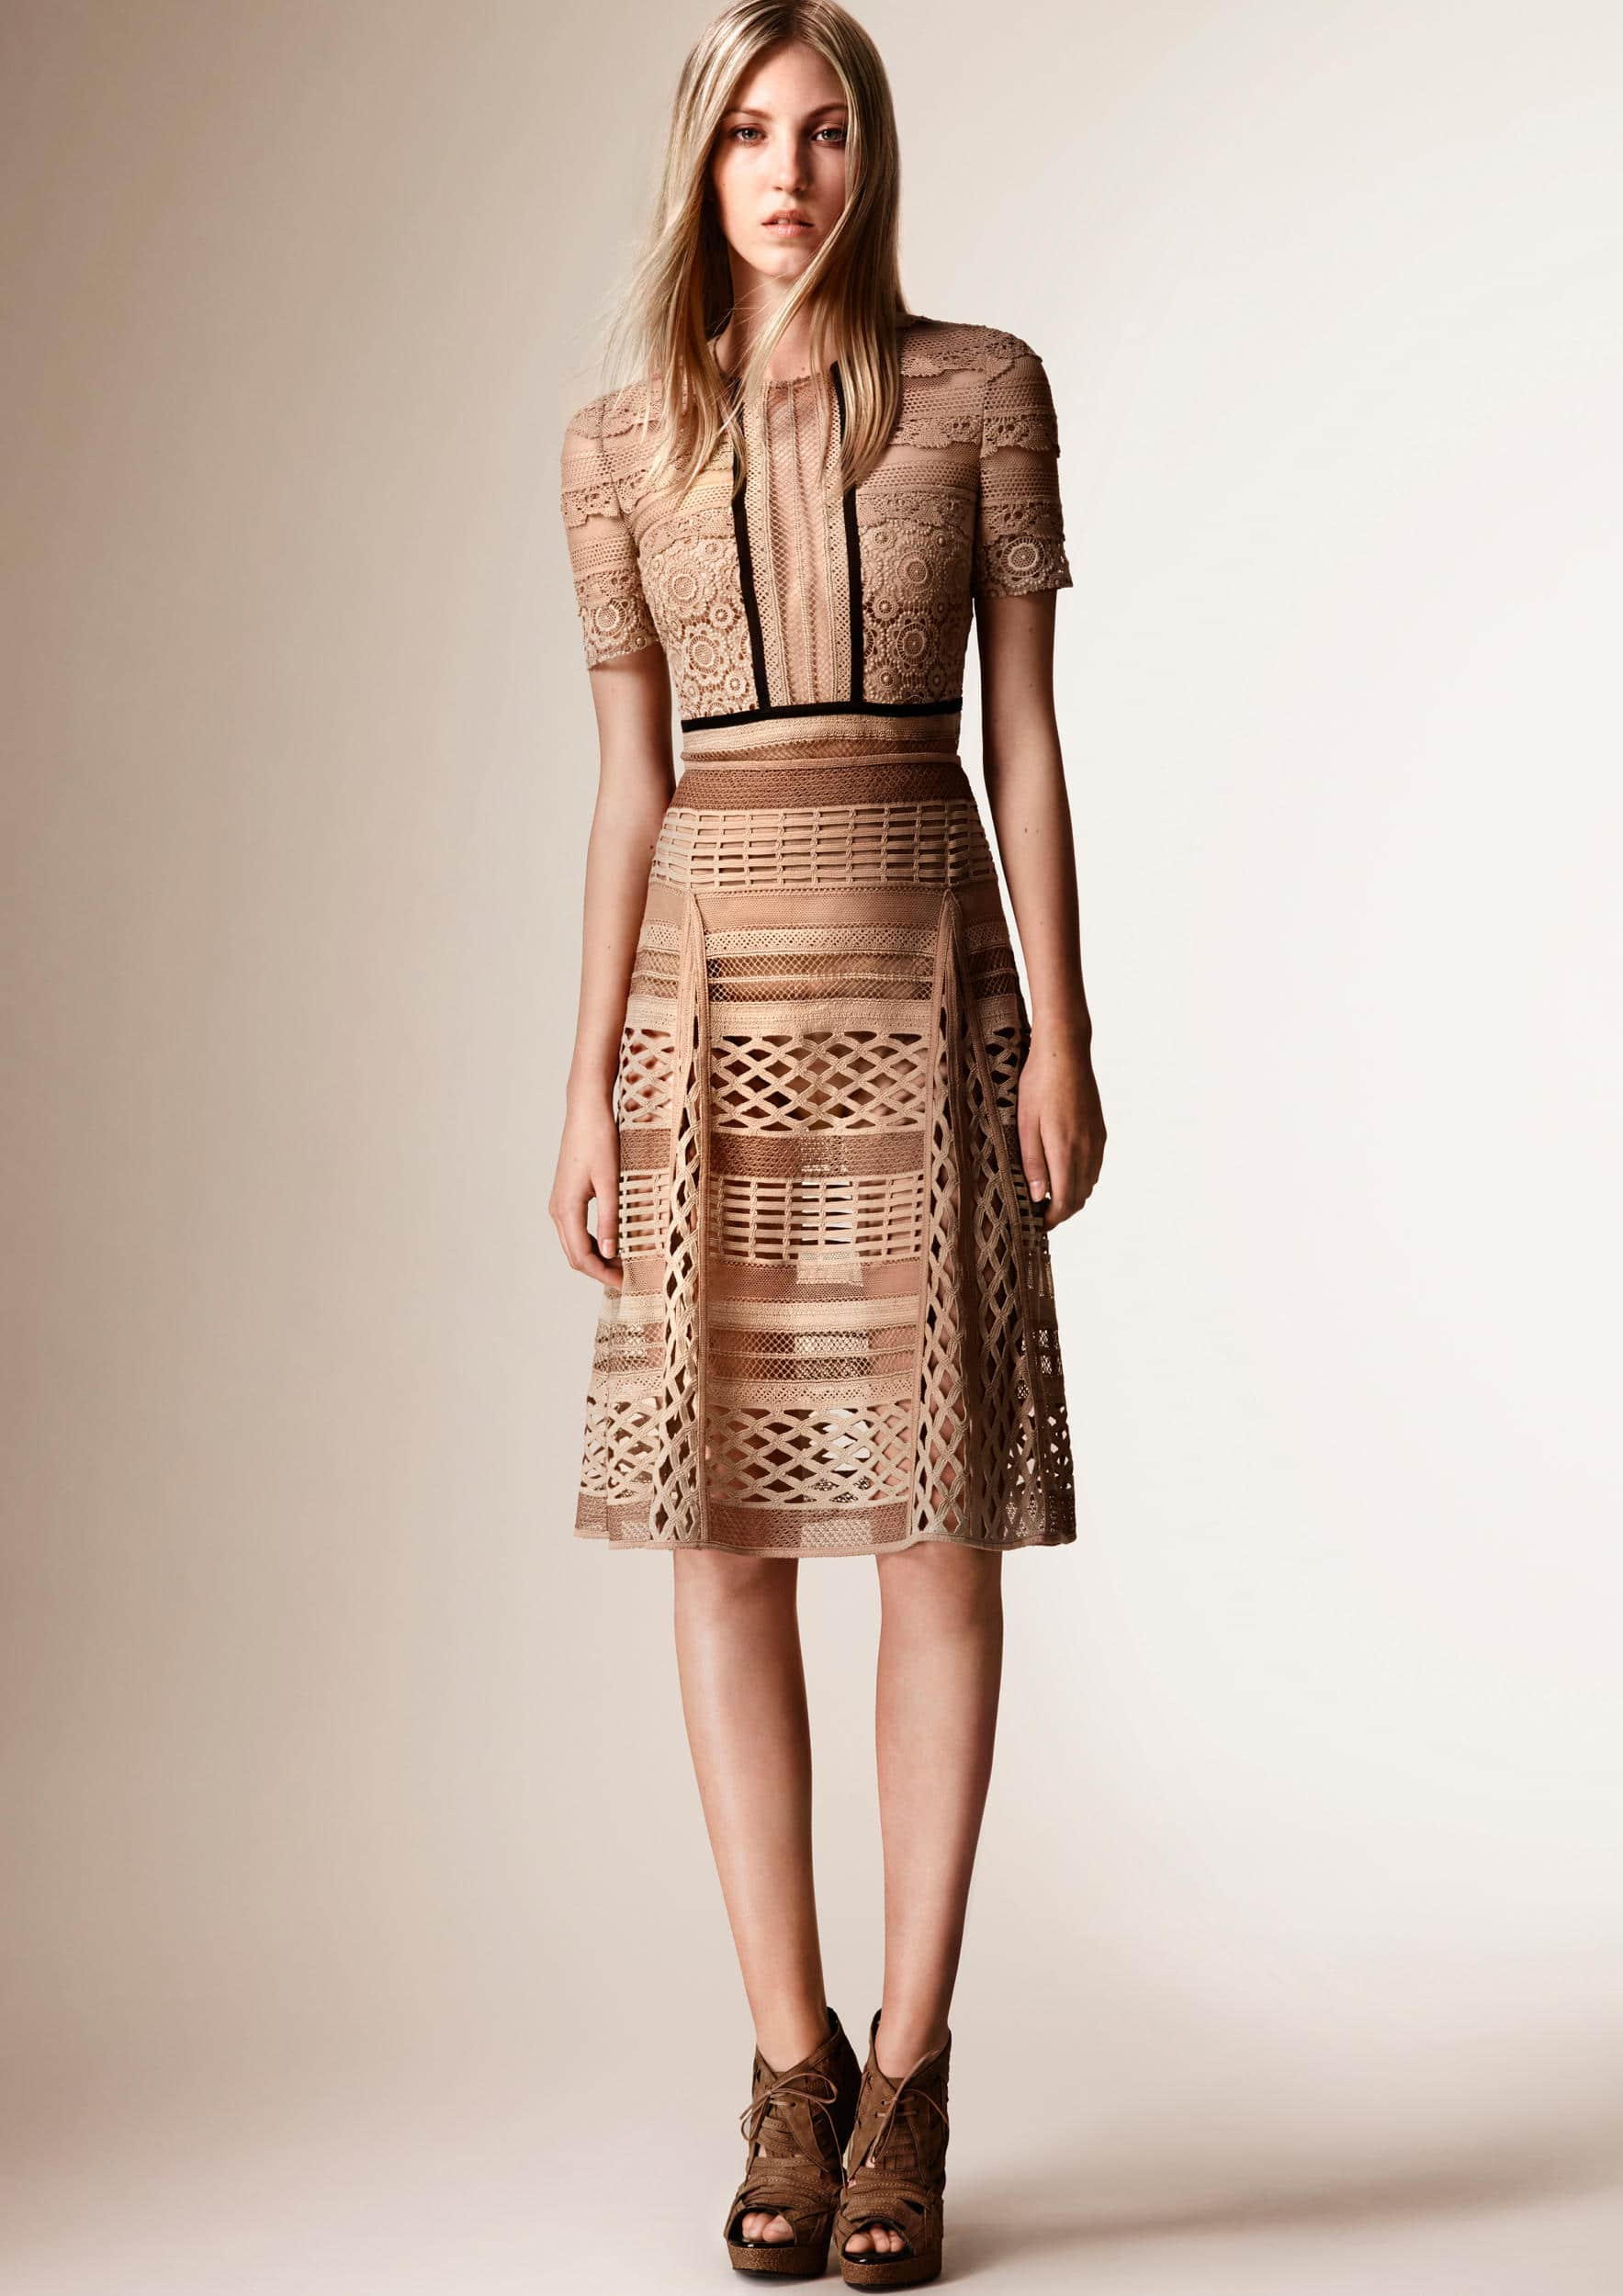 burberry-resort-collection-2016-9